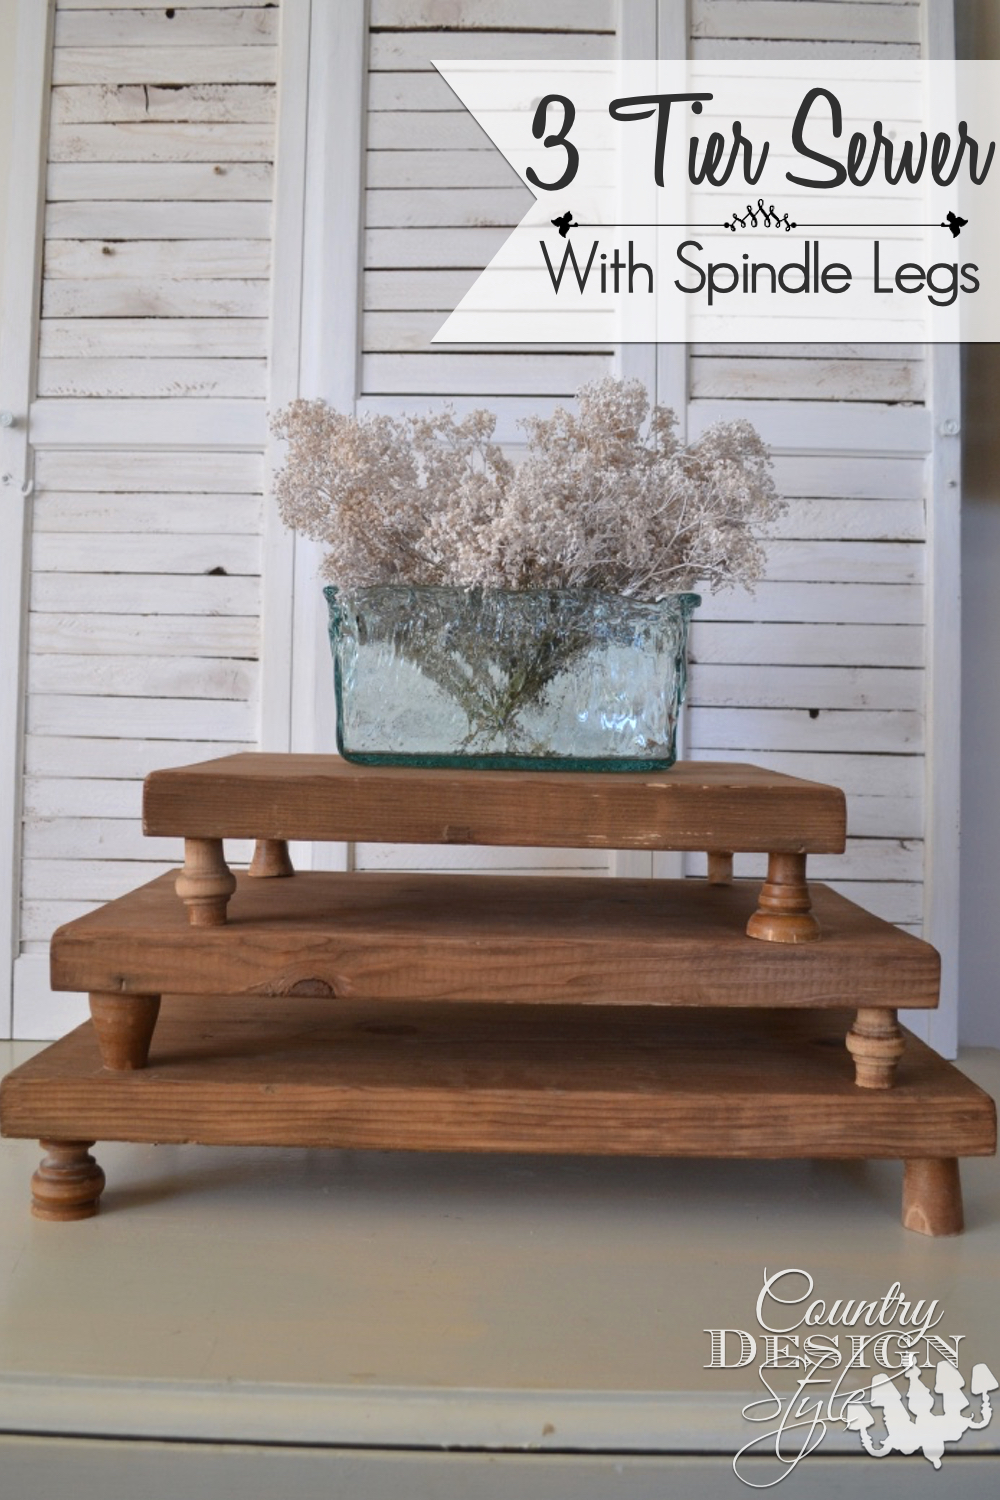 3 Tier Server with Spindle Legs | Country Design Style | countrydesignstyle.com